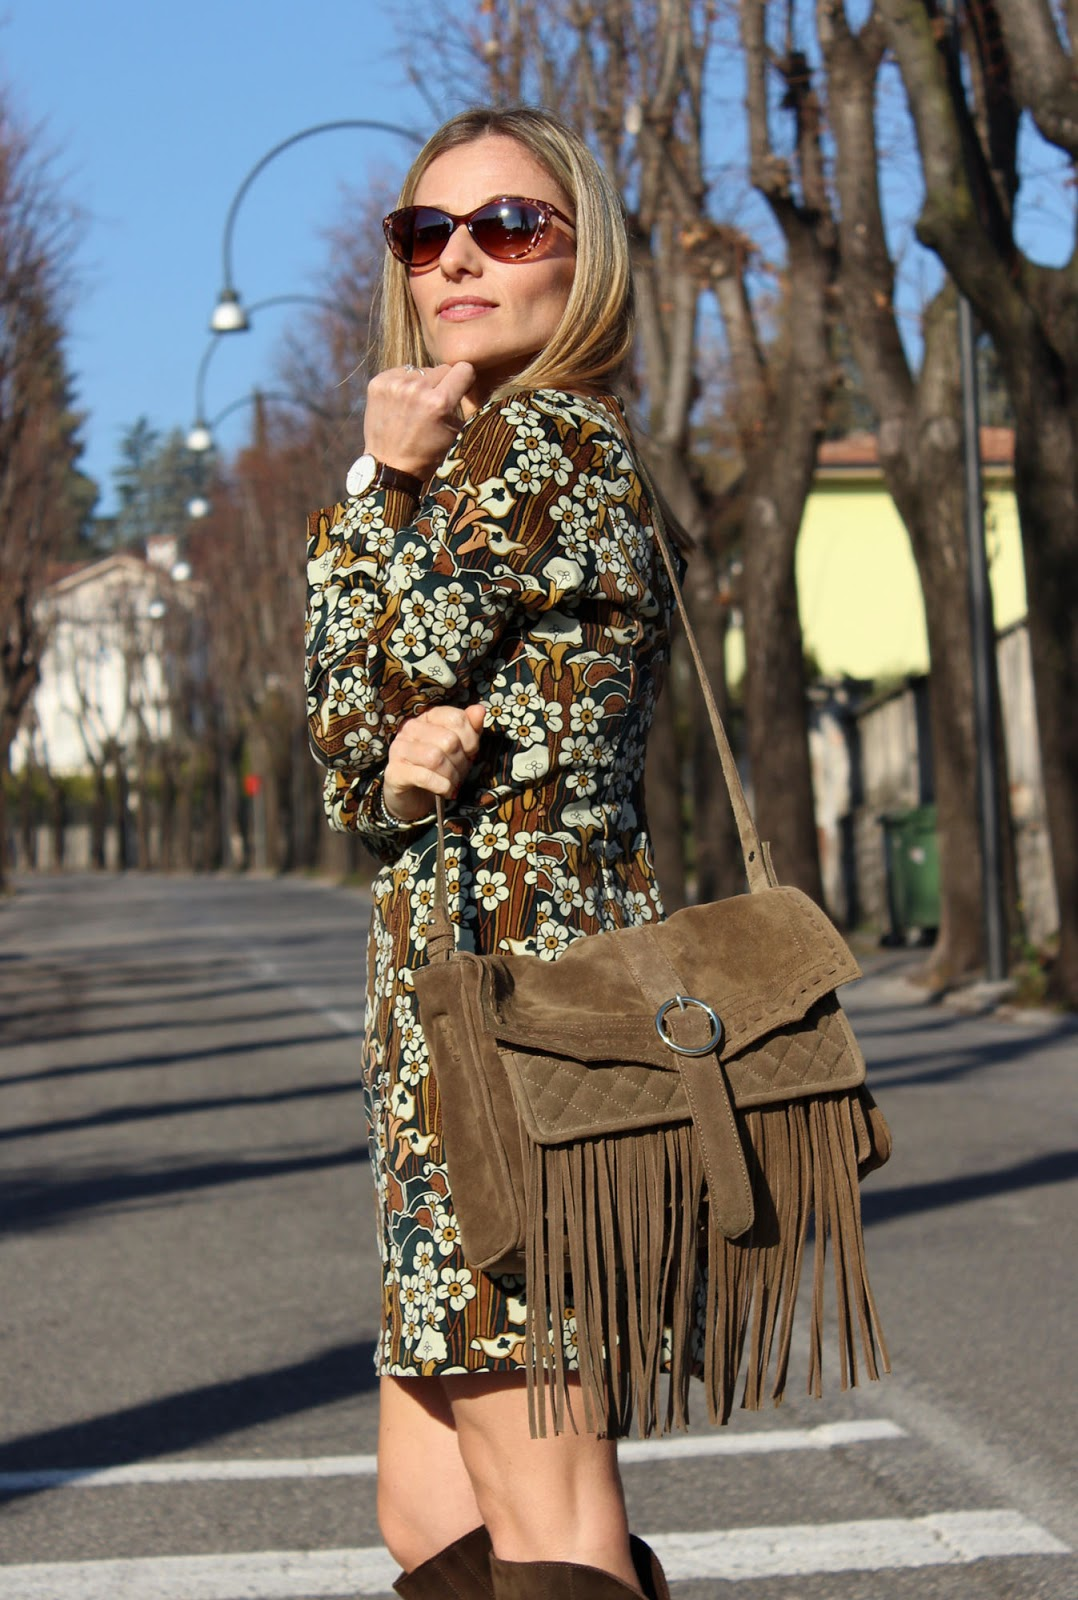 Eniwhere Fashion - 70's are back outfit